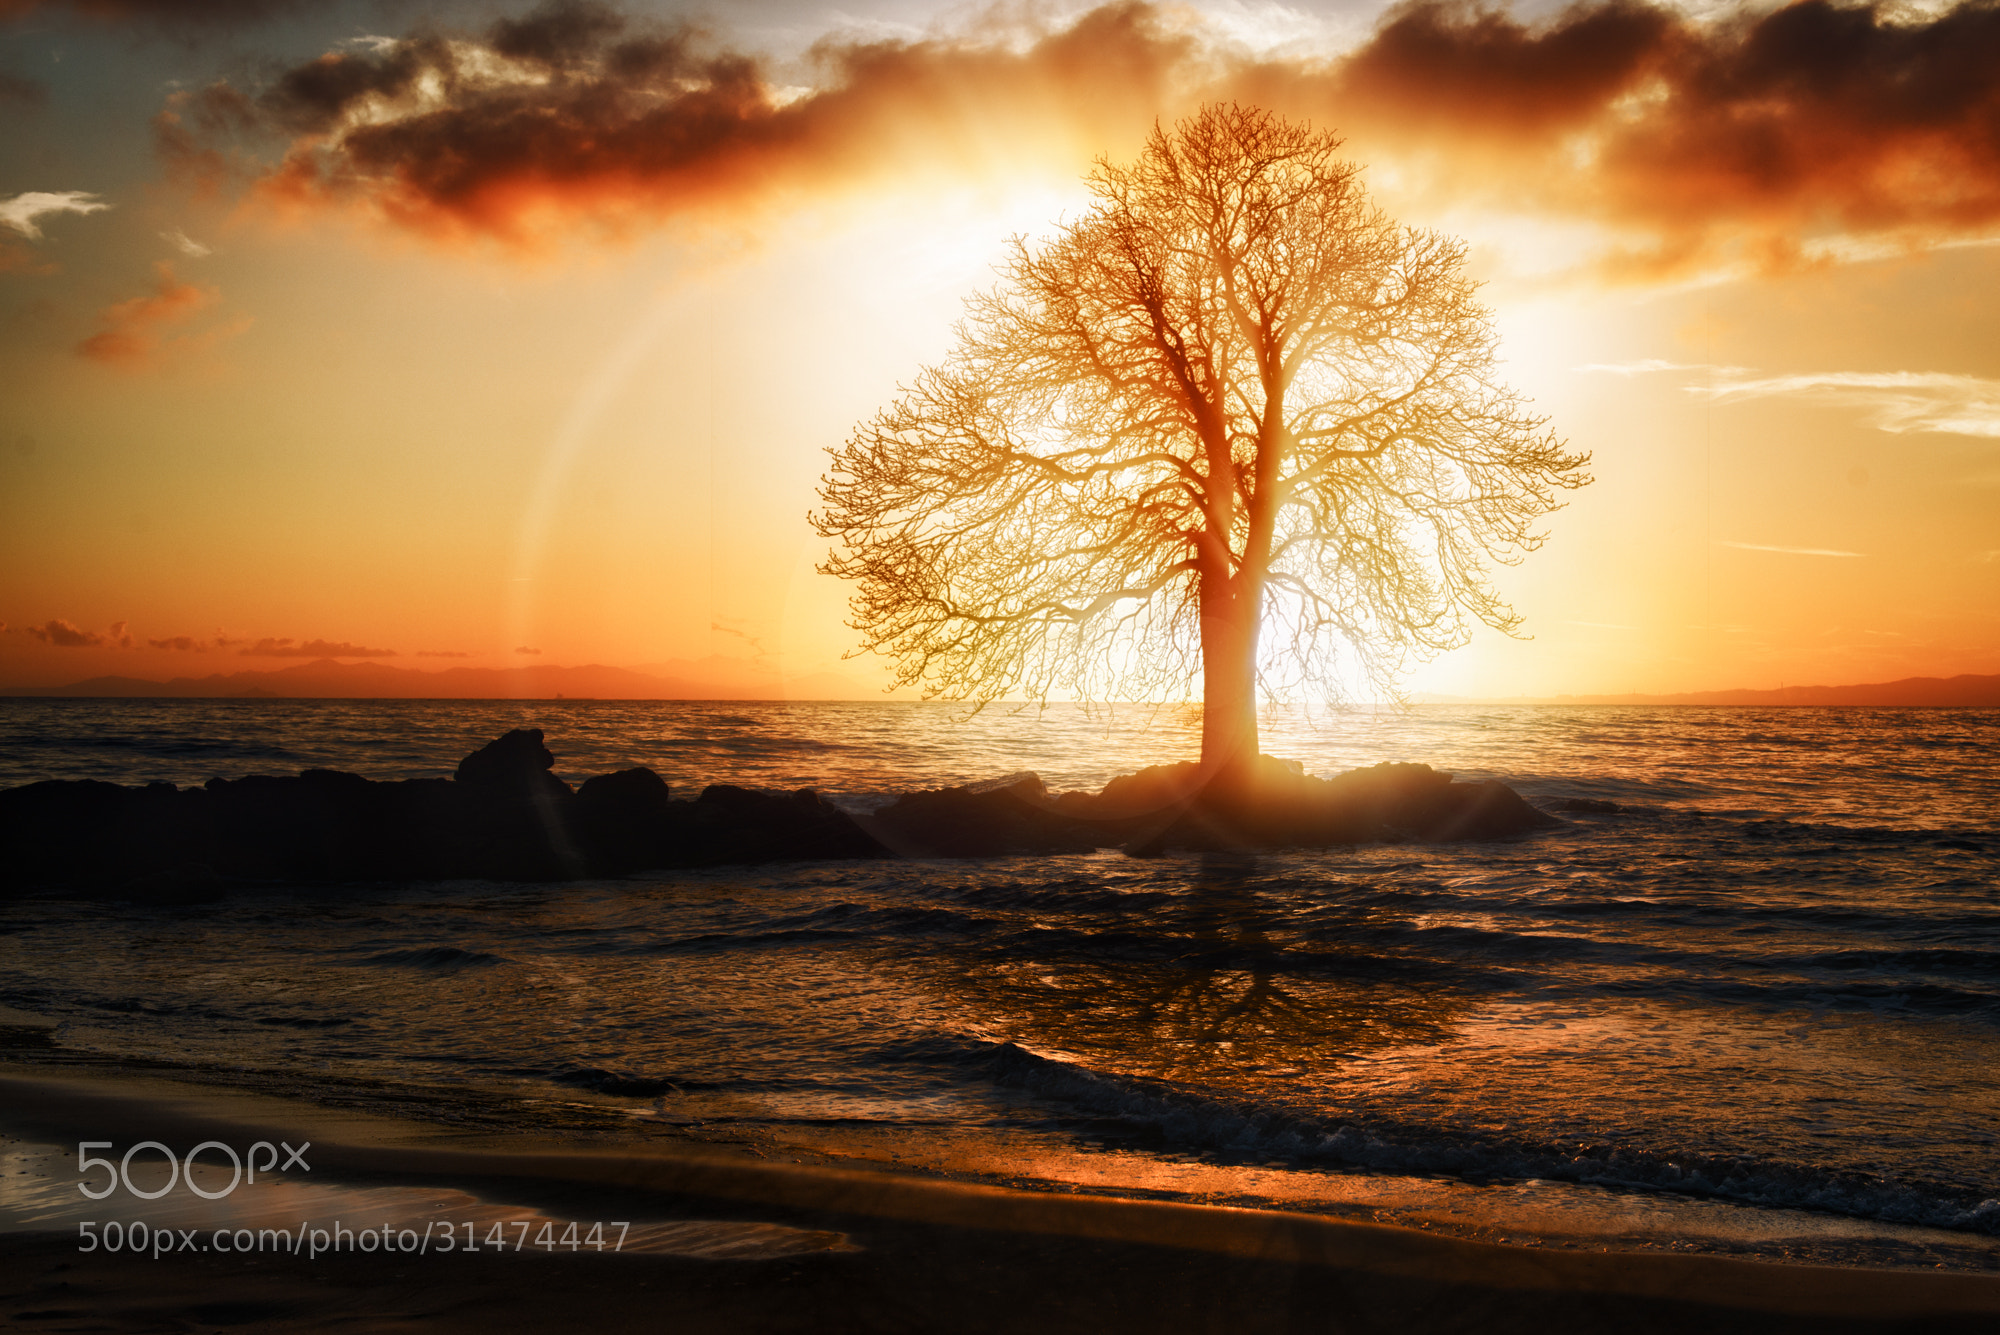 Photograph The Tree in the Sea by John Wilhelm on 500px